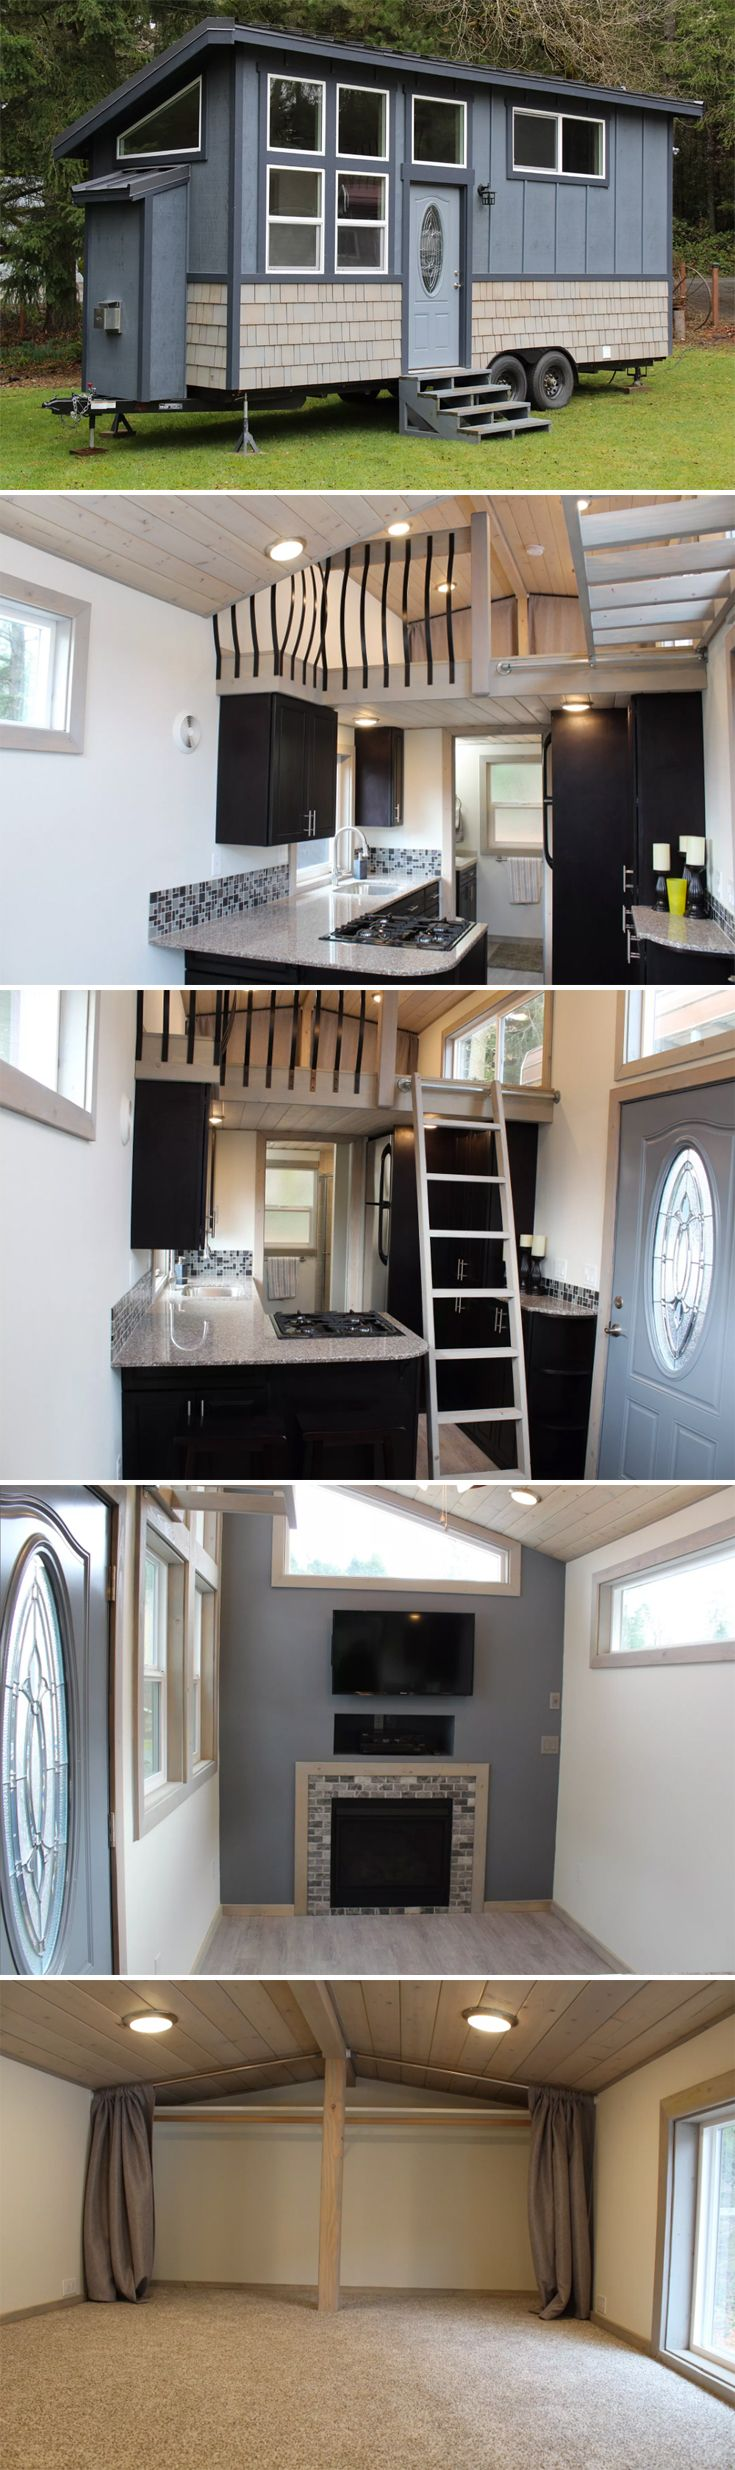 Best 25+ Front of houses ideas on Pinterest | Front design of ...